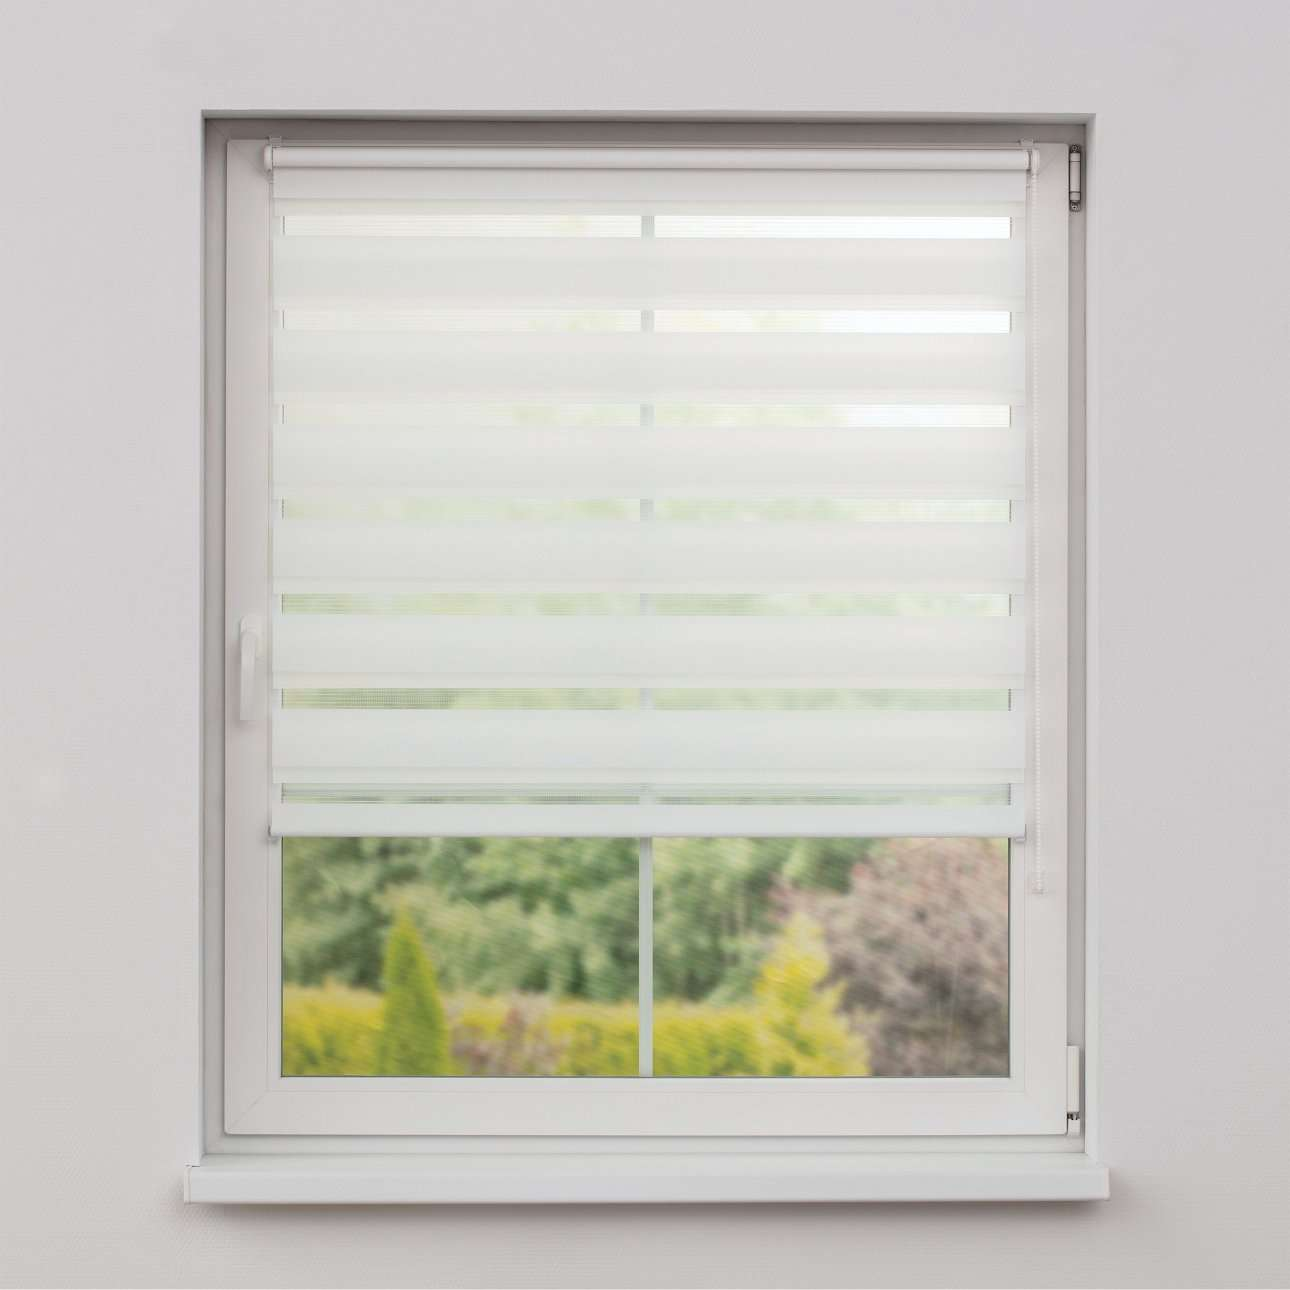 Mini Day & Night Venetian roller blind (compact design for fitting inside window recess) in collection Roller blinds Day & Night (Venetian blind), fabric: 0101